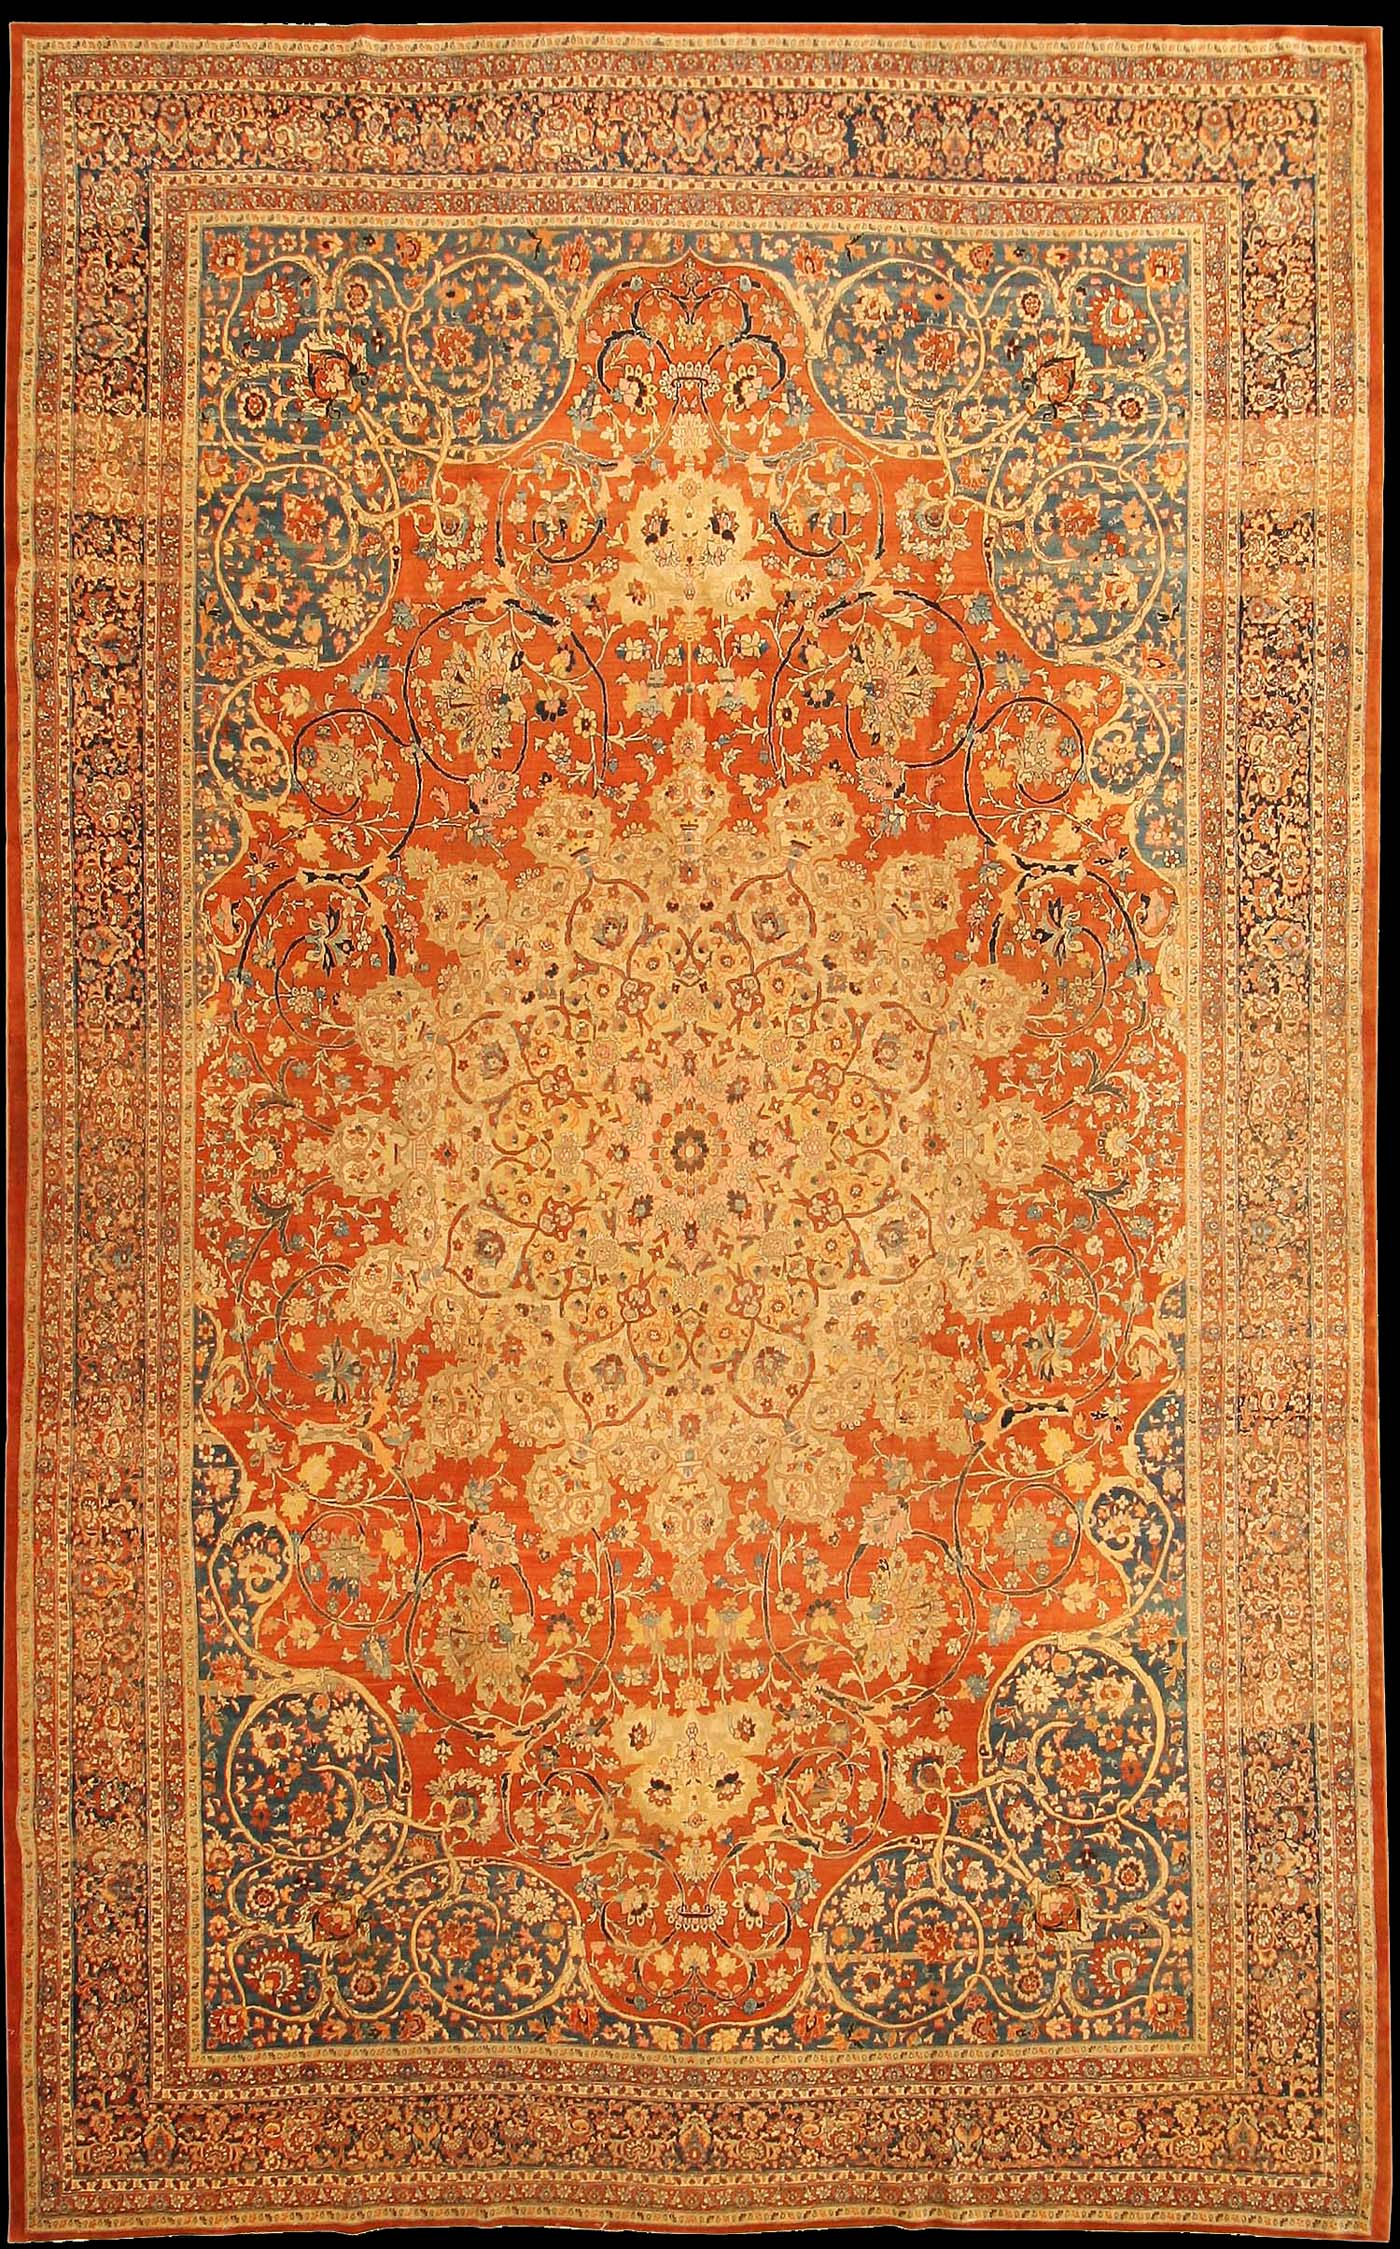 A Large Antique Tabriz Carpet